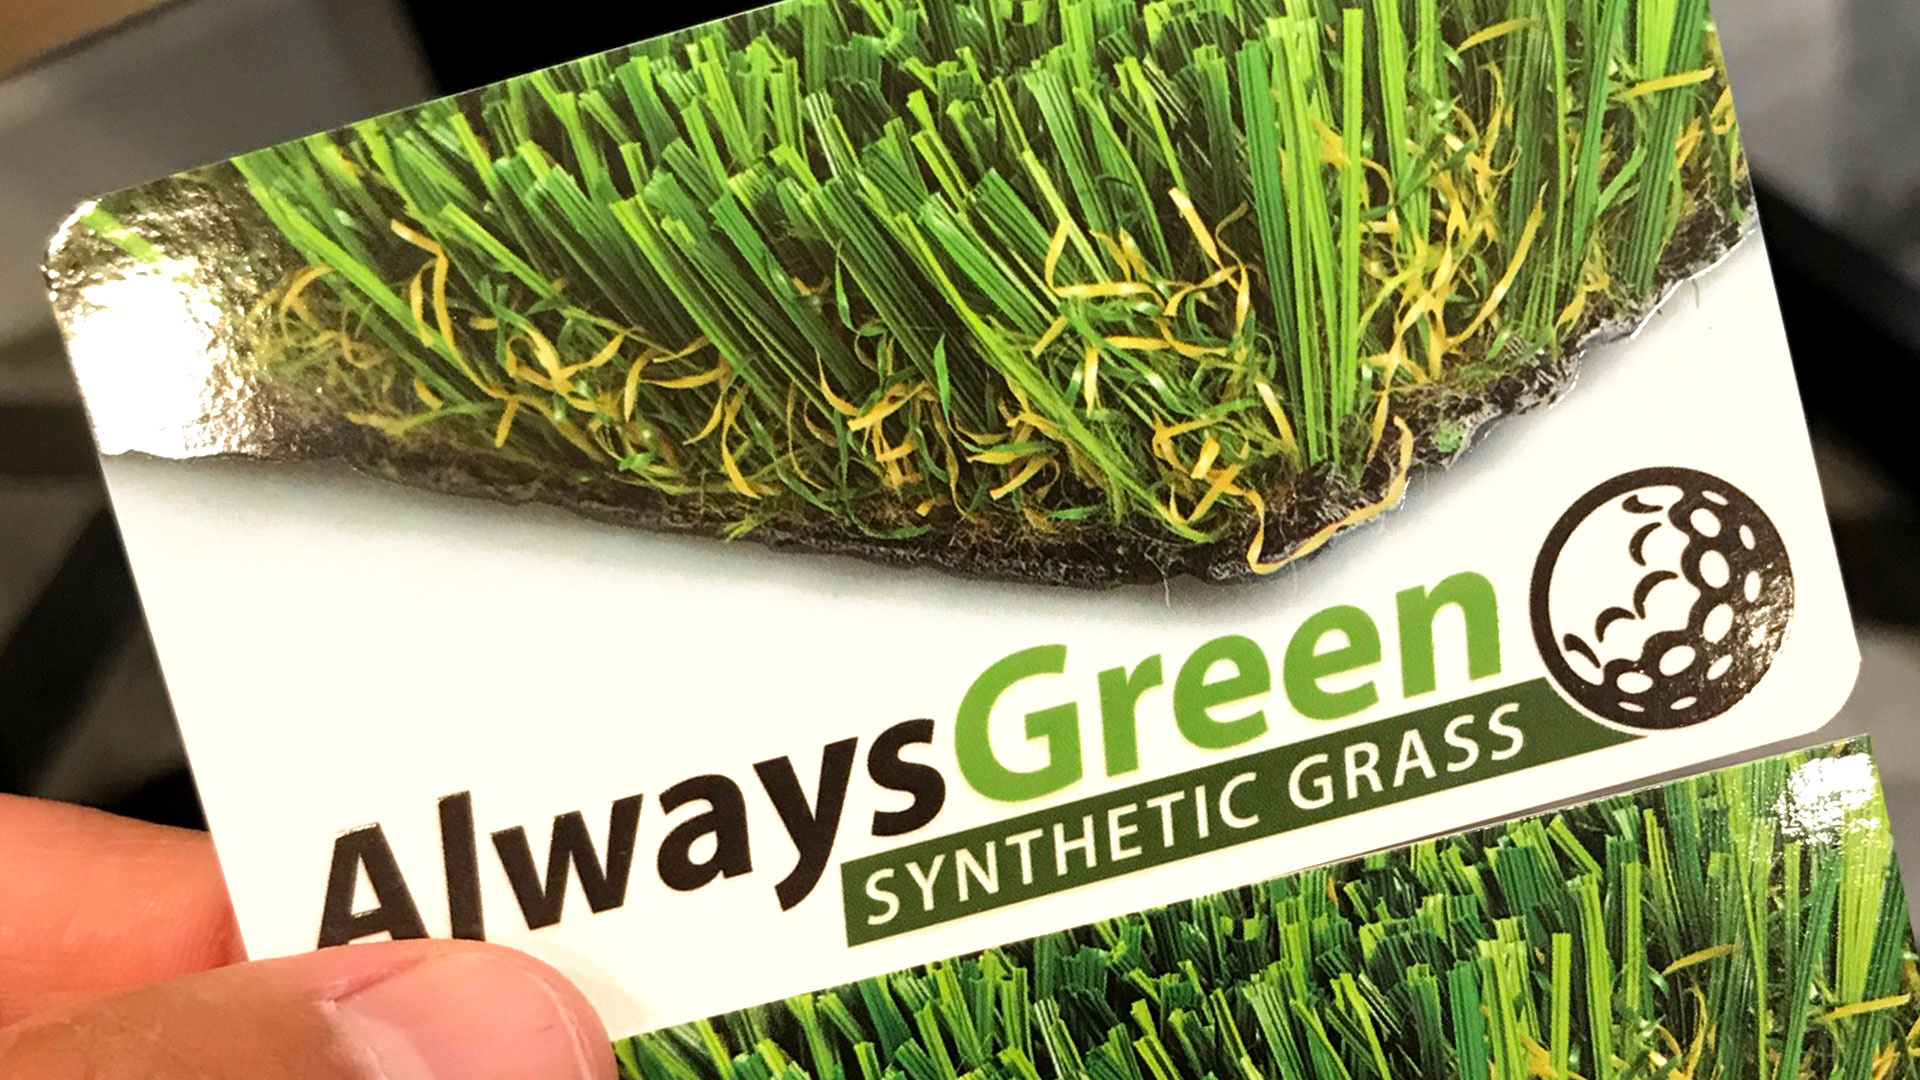 Always-Green-Synthetic-Grass-Business-Card.jpg